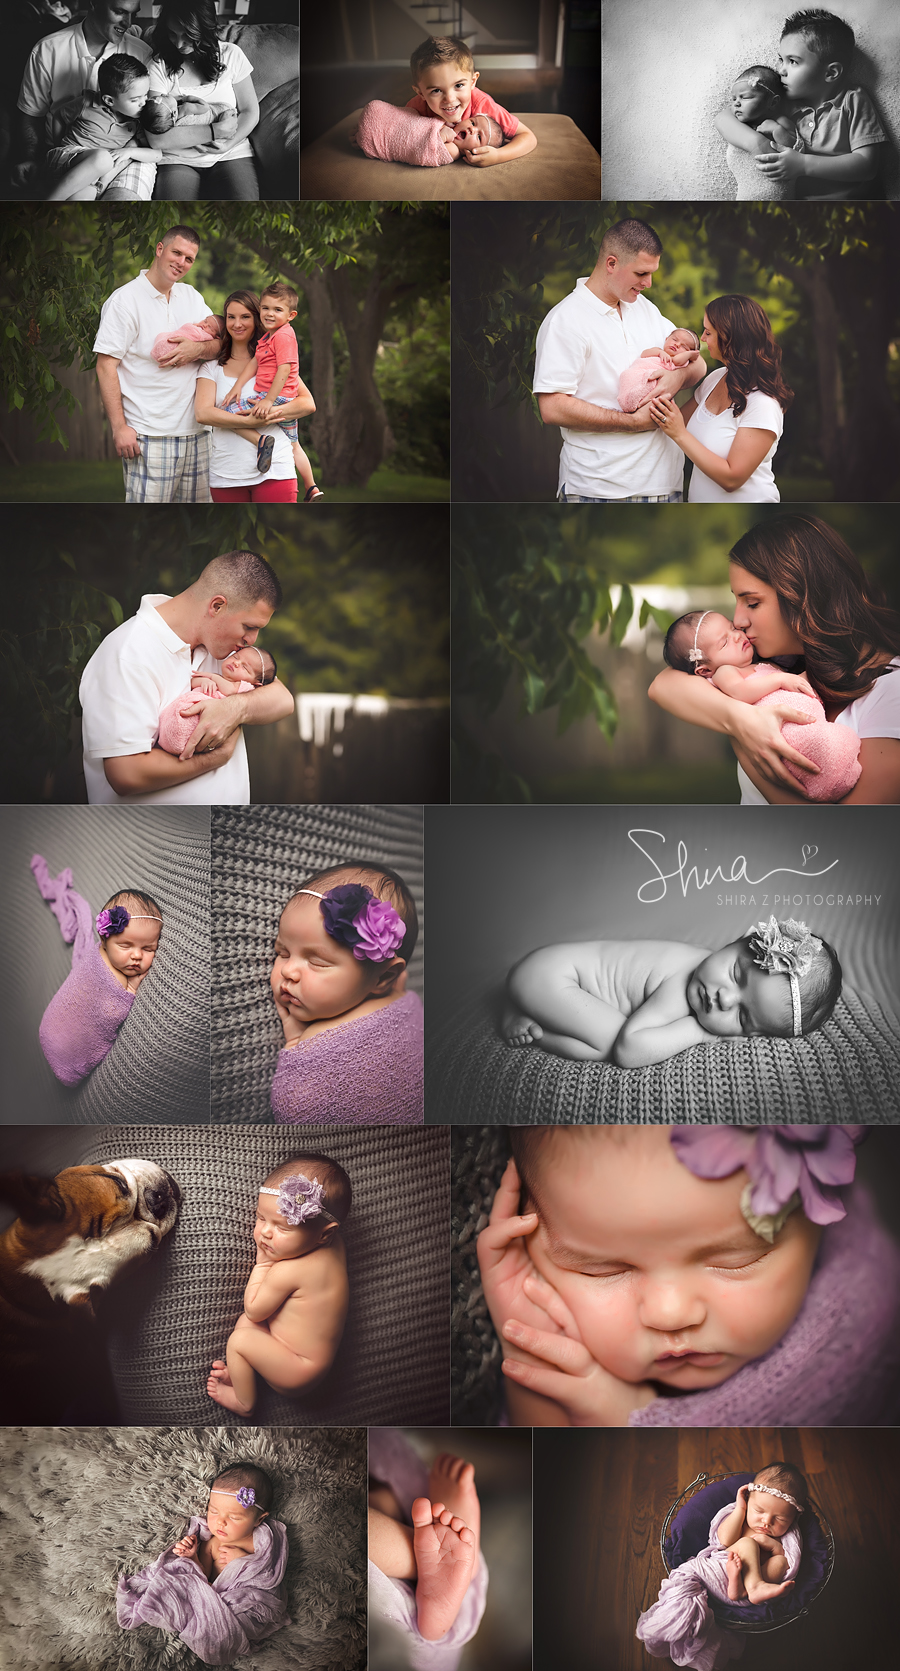 collage of a Long Island Newborn session photographed in purple with brother and parents